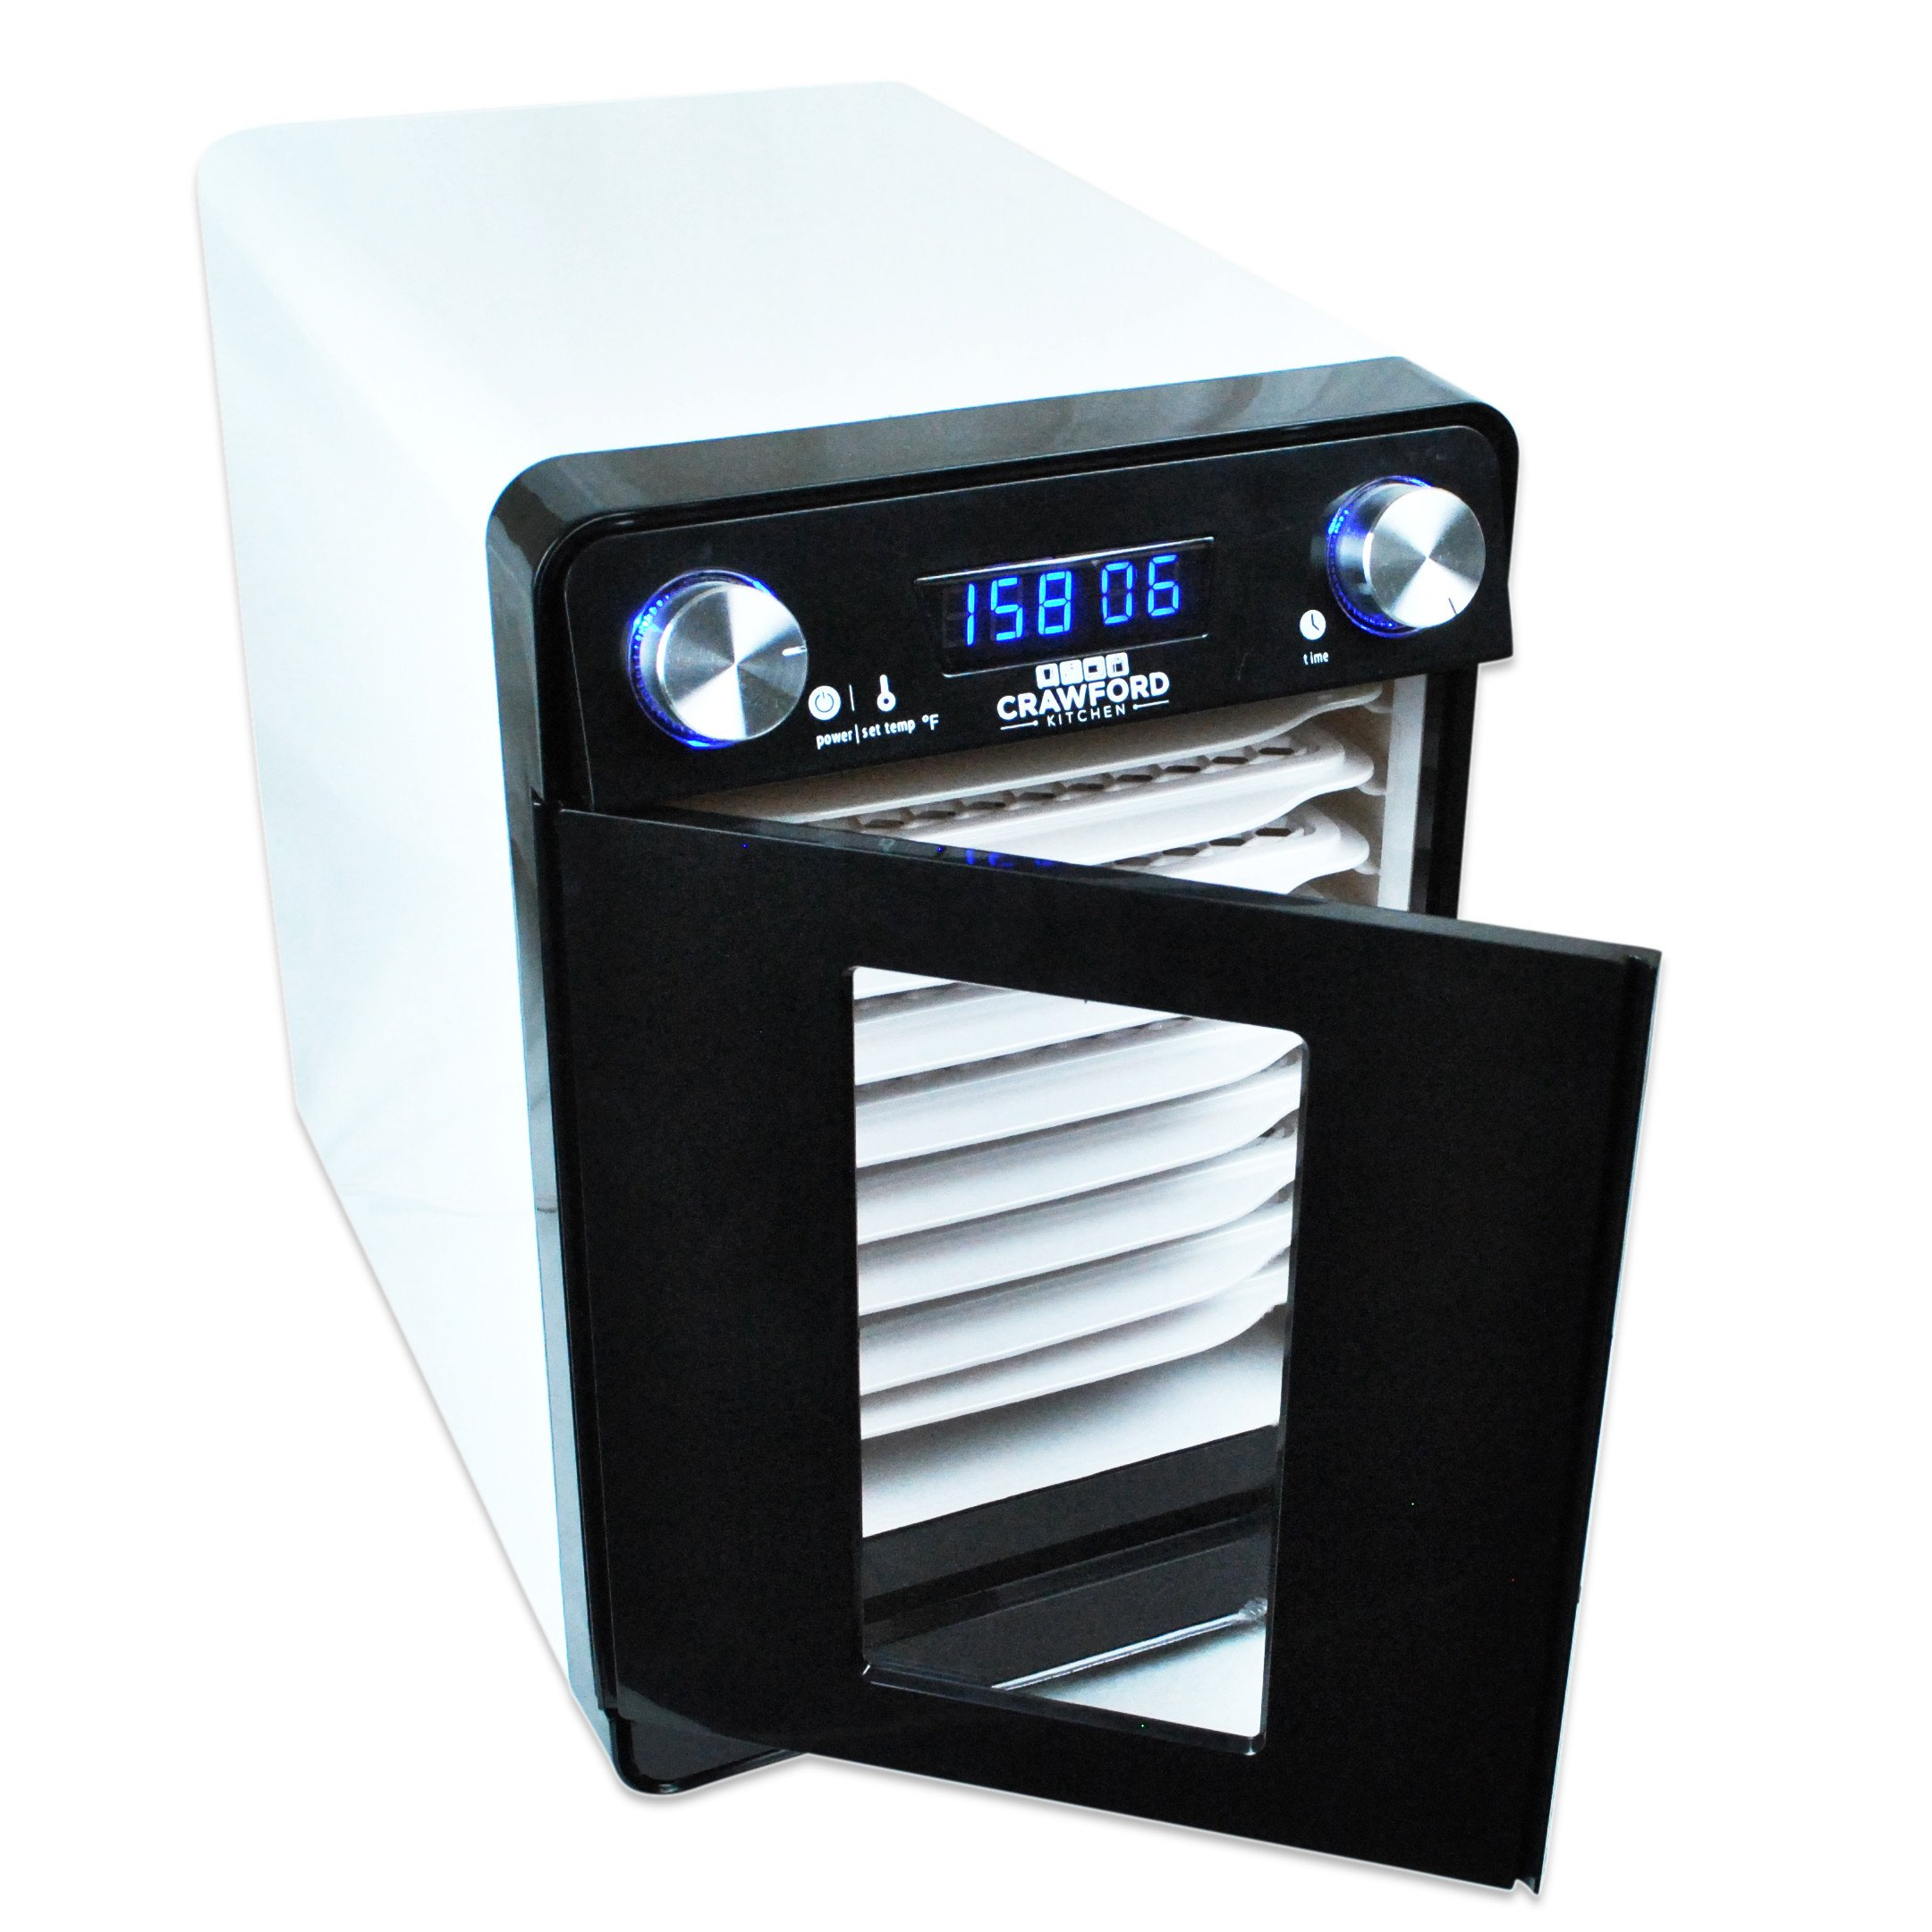 Crawford Kitchen Countertop Food Dehydrator | Easy To Clean Body & Trays | 48h Digital Timer And Heat Control | Ultra Quiet High Efficiency Design (9 Tray)